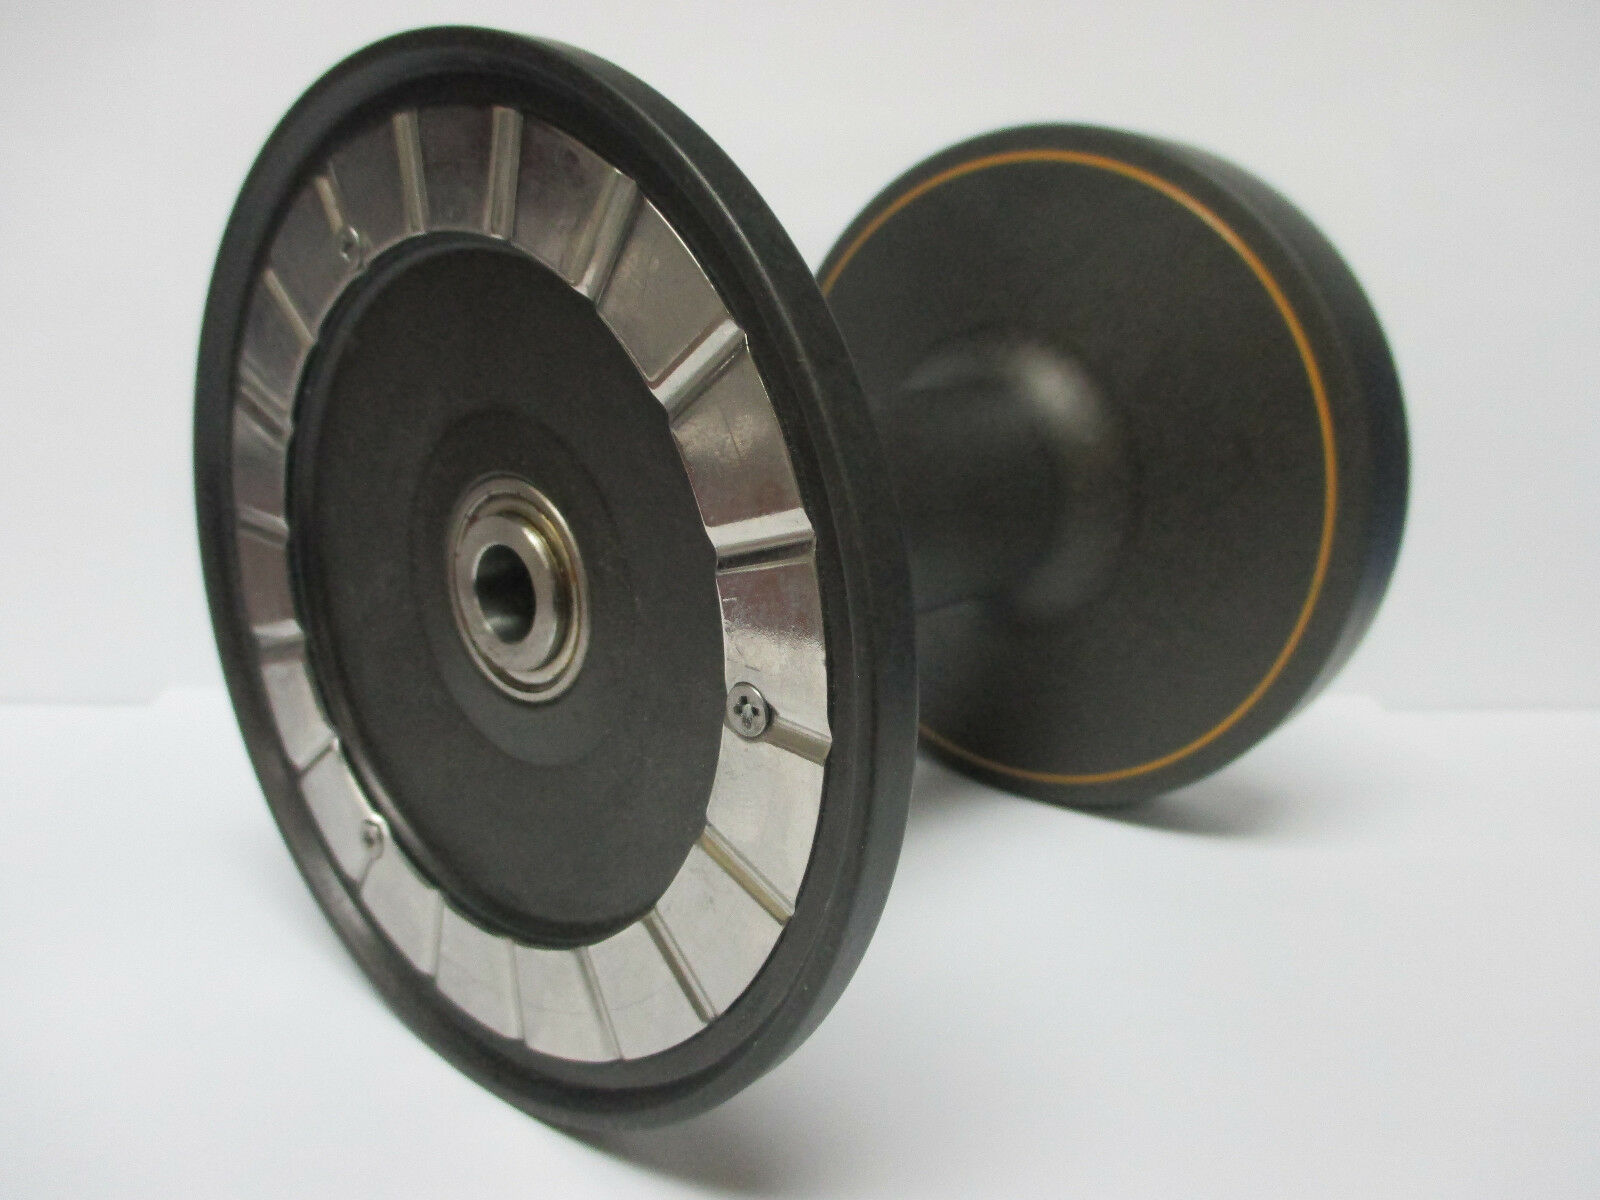 NEW - DUEL BIG GAME REEL PART - NEW 12/0 WS Two Speed 12/0 WS Wide - Spool Assembly 2f75fb